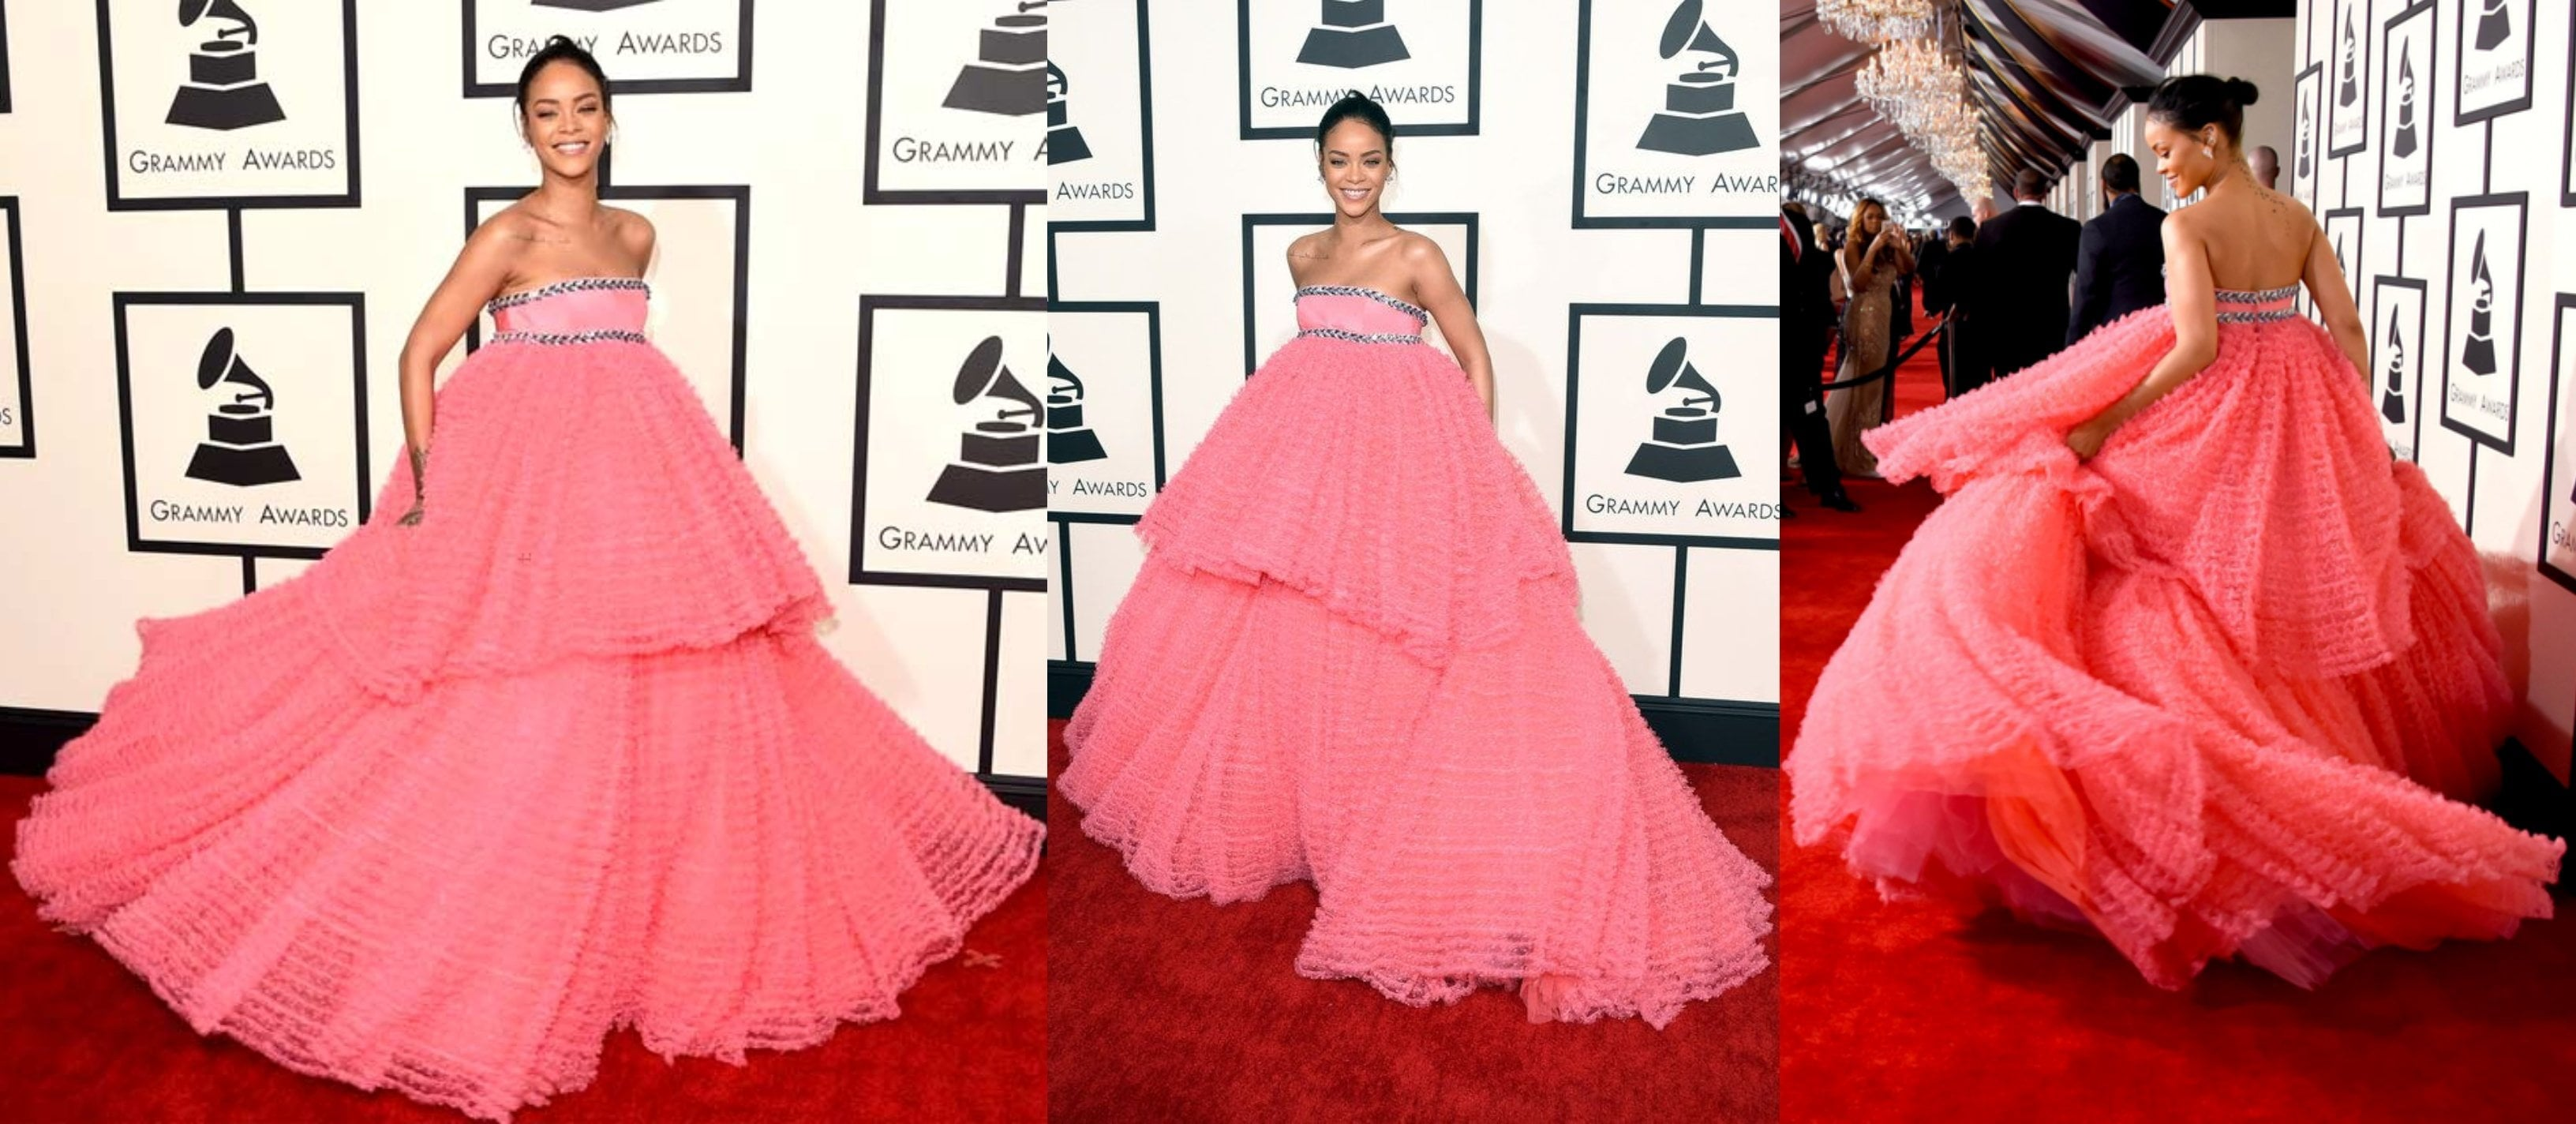 Celebrity Style Ball Gown - Get the Spunk of Rihanna!